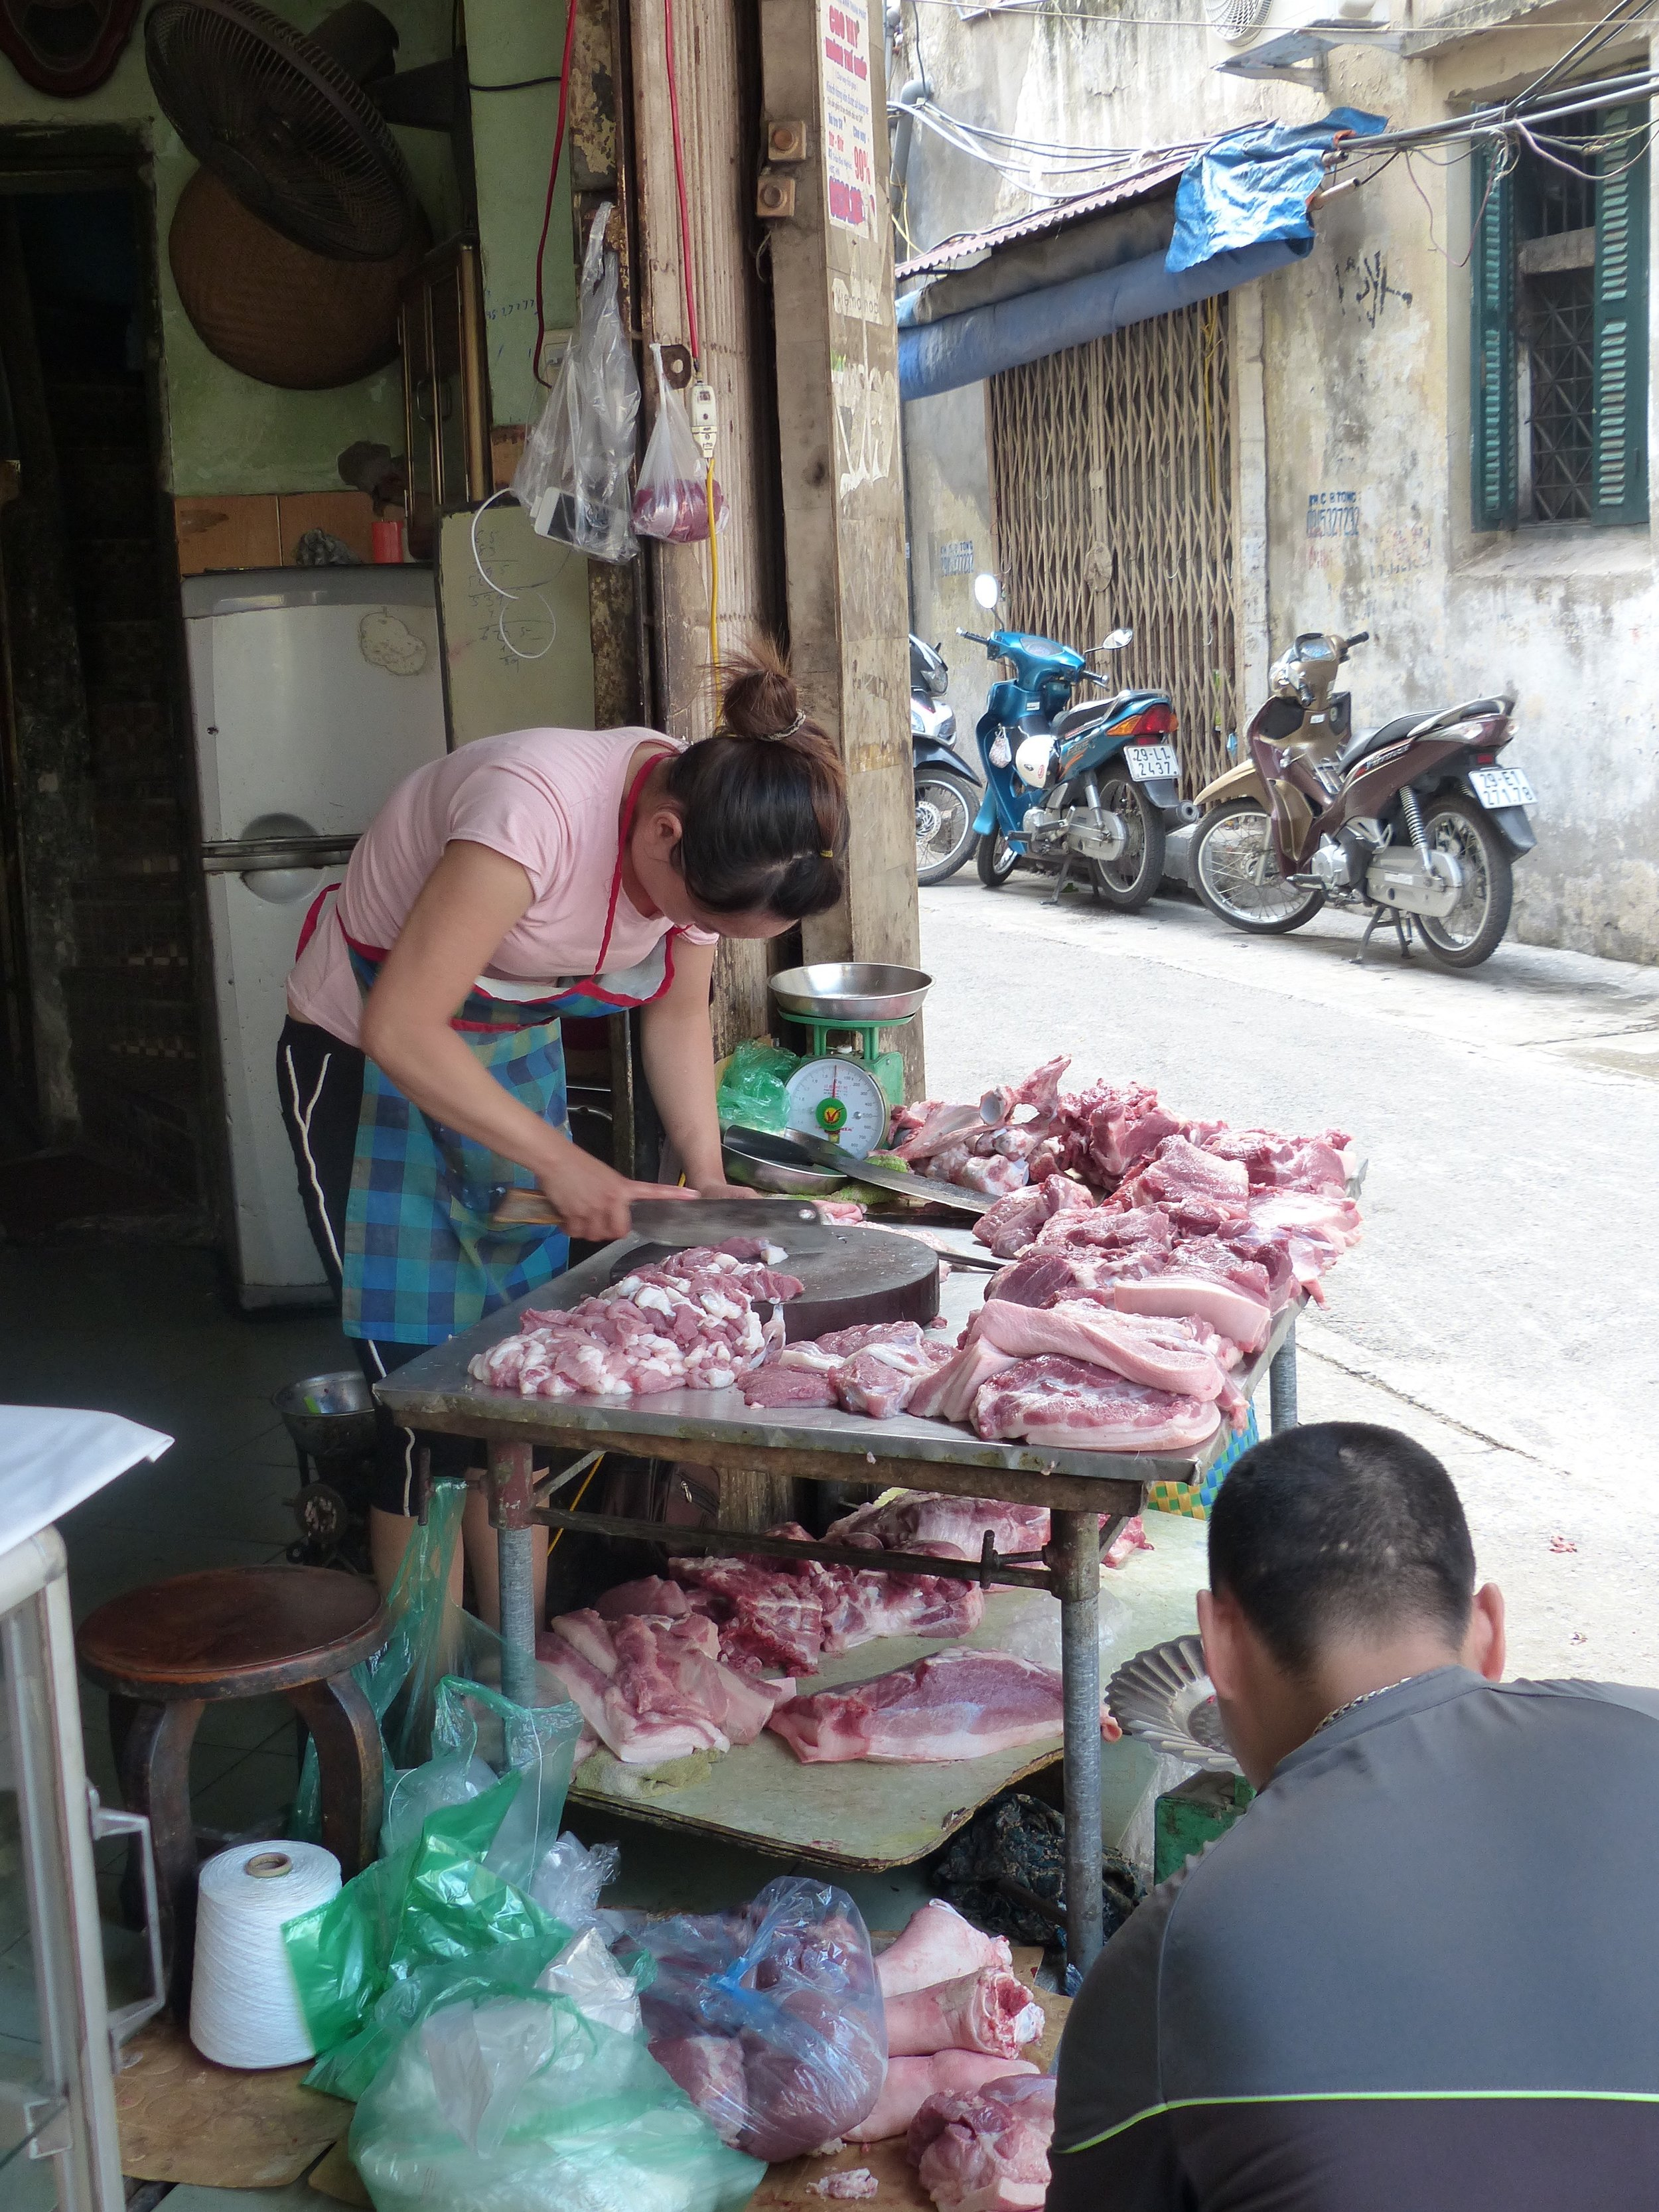 Streetside butchery bears no resemblance to the  macellerias  in Italy.